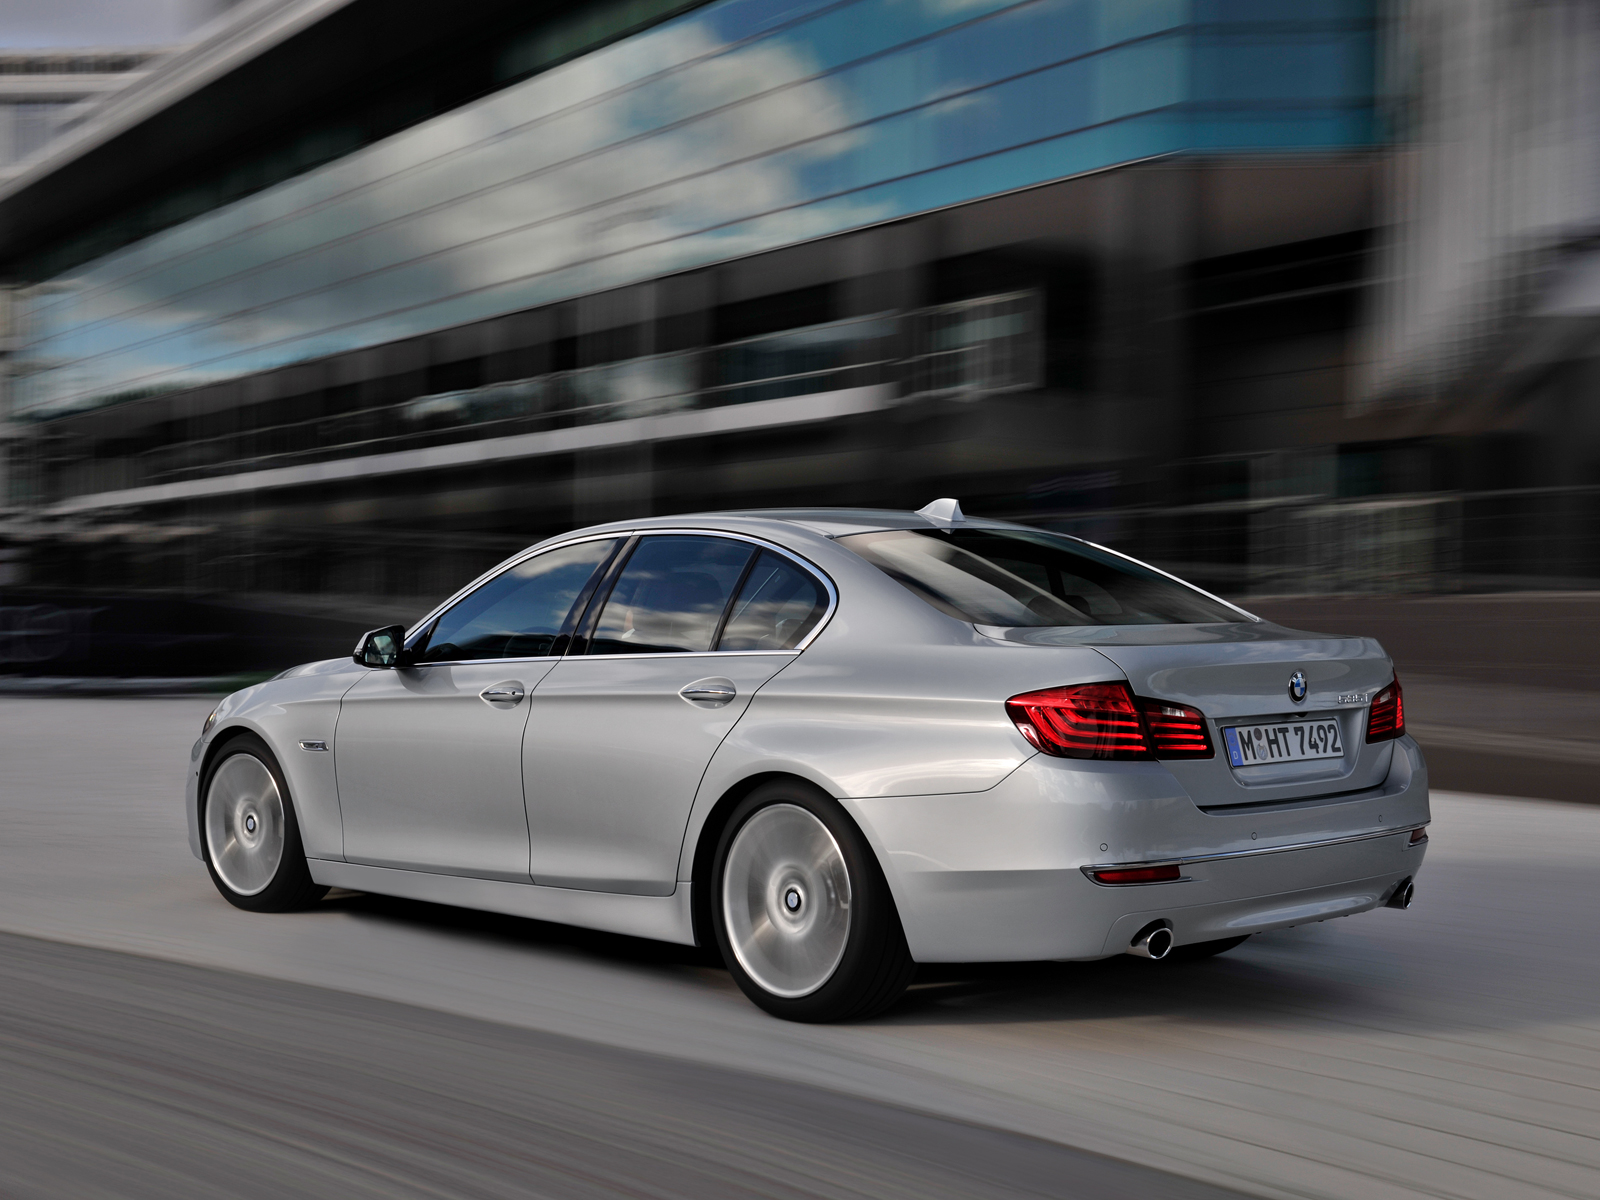 2014 Bmw 535i Sedan Left Rear View